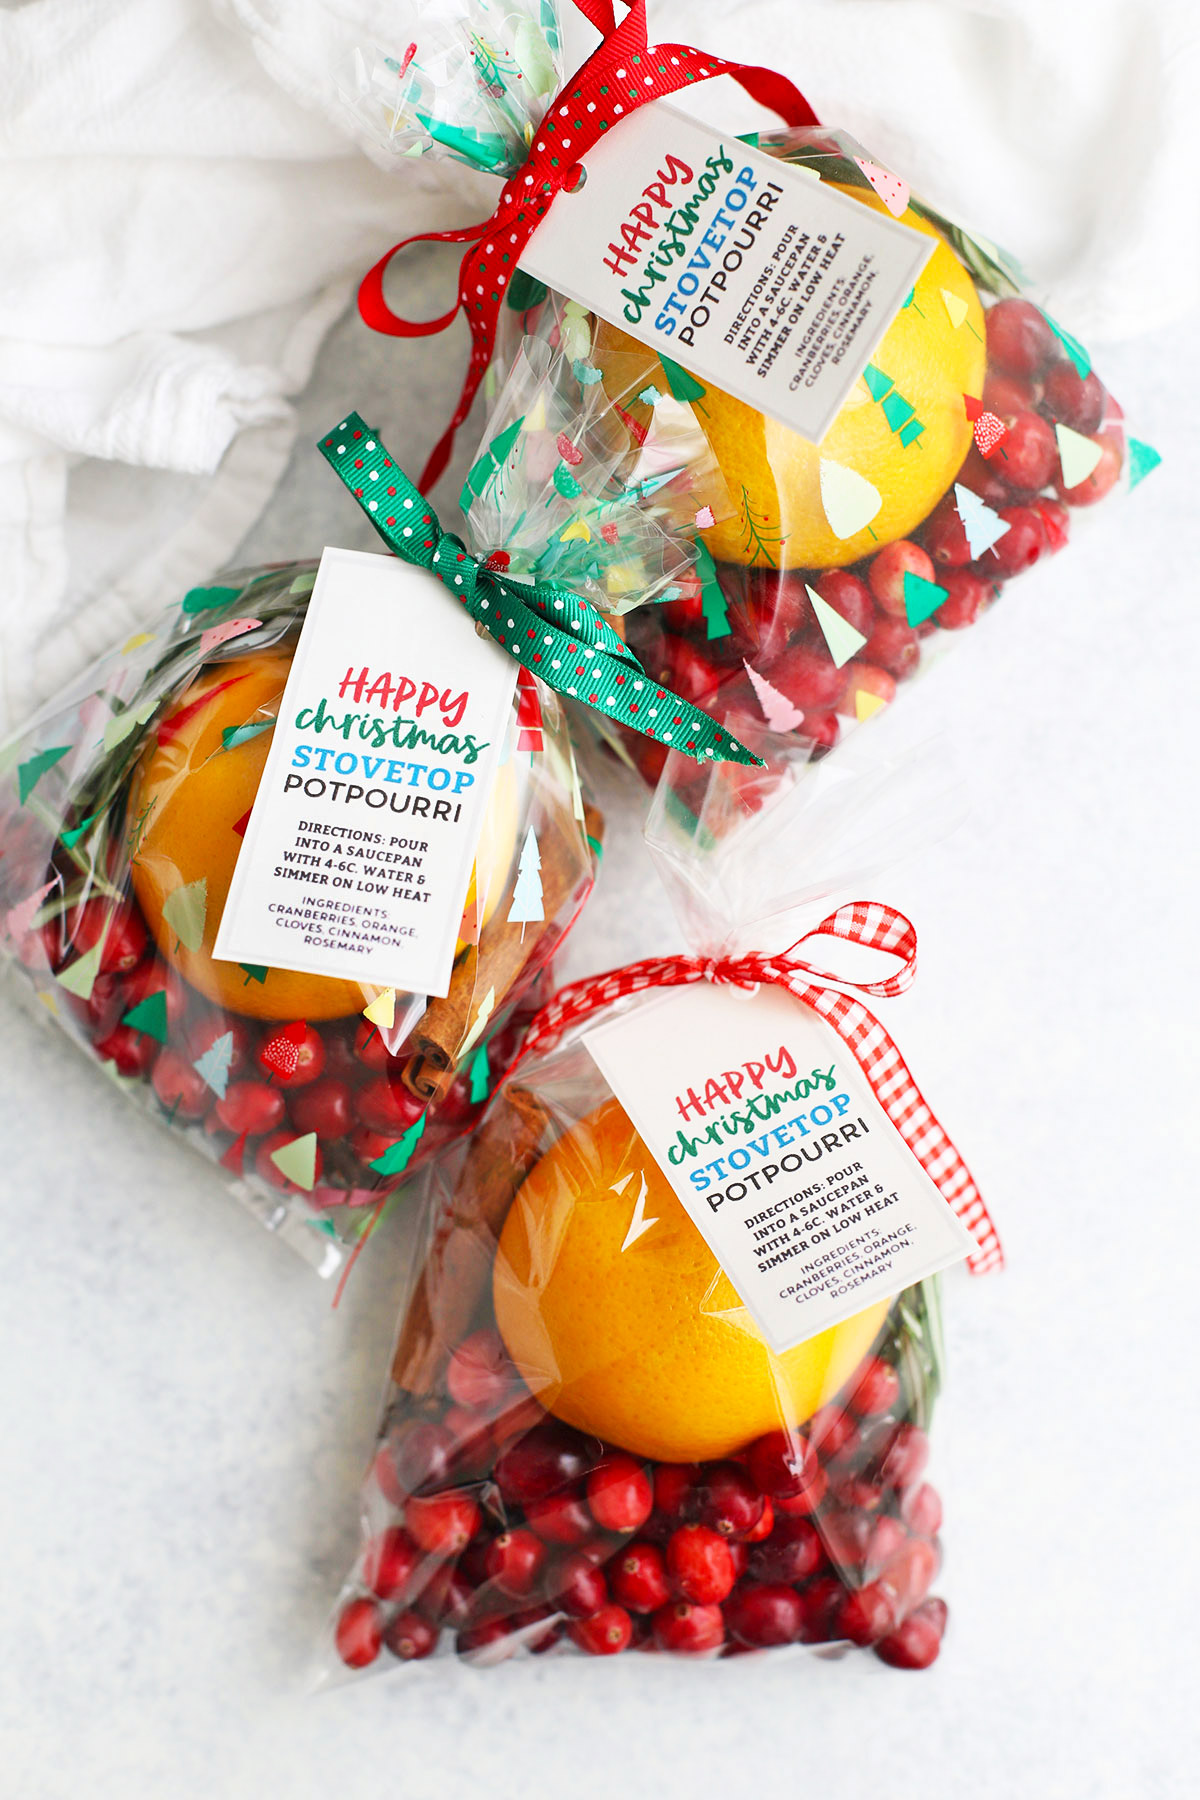 Christmas potpourri packaged with ribbons and printable tags